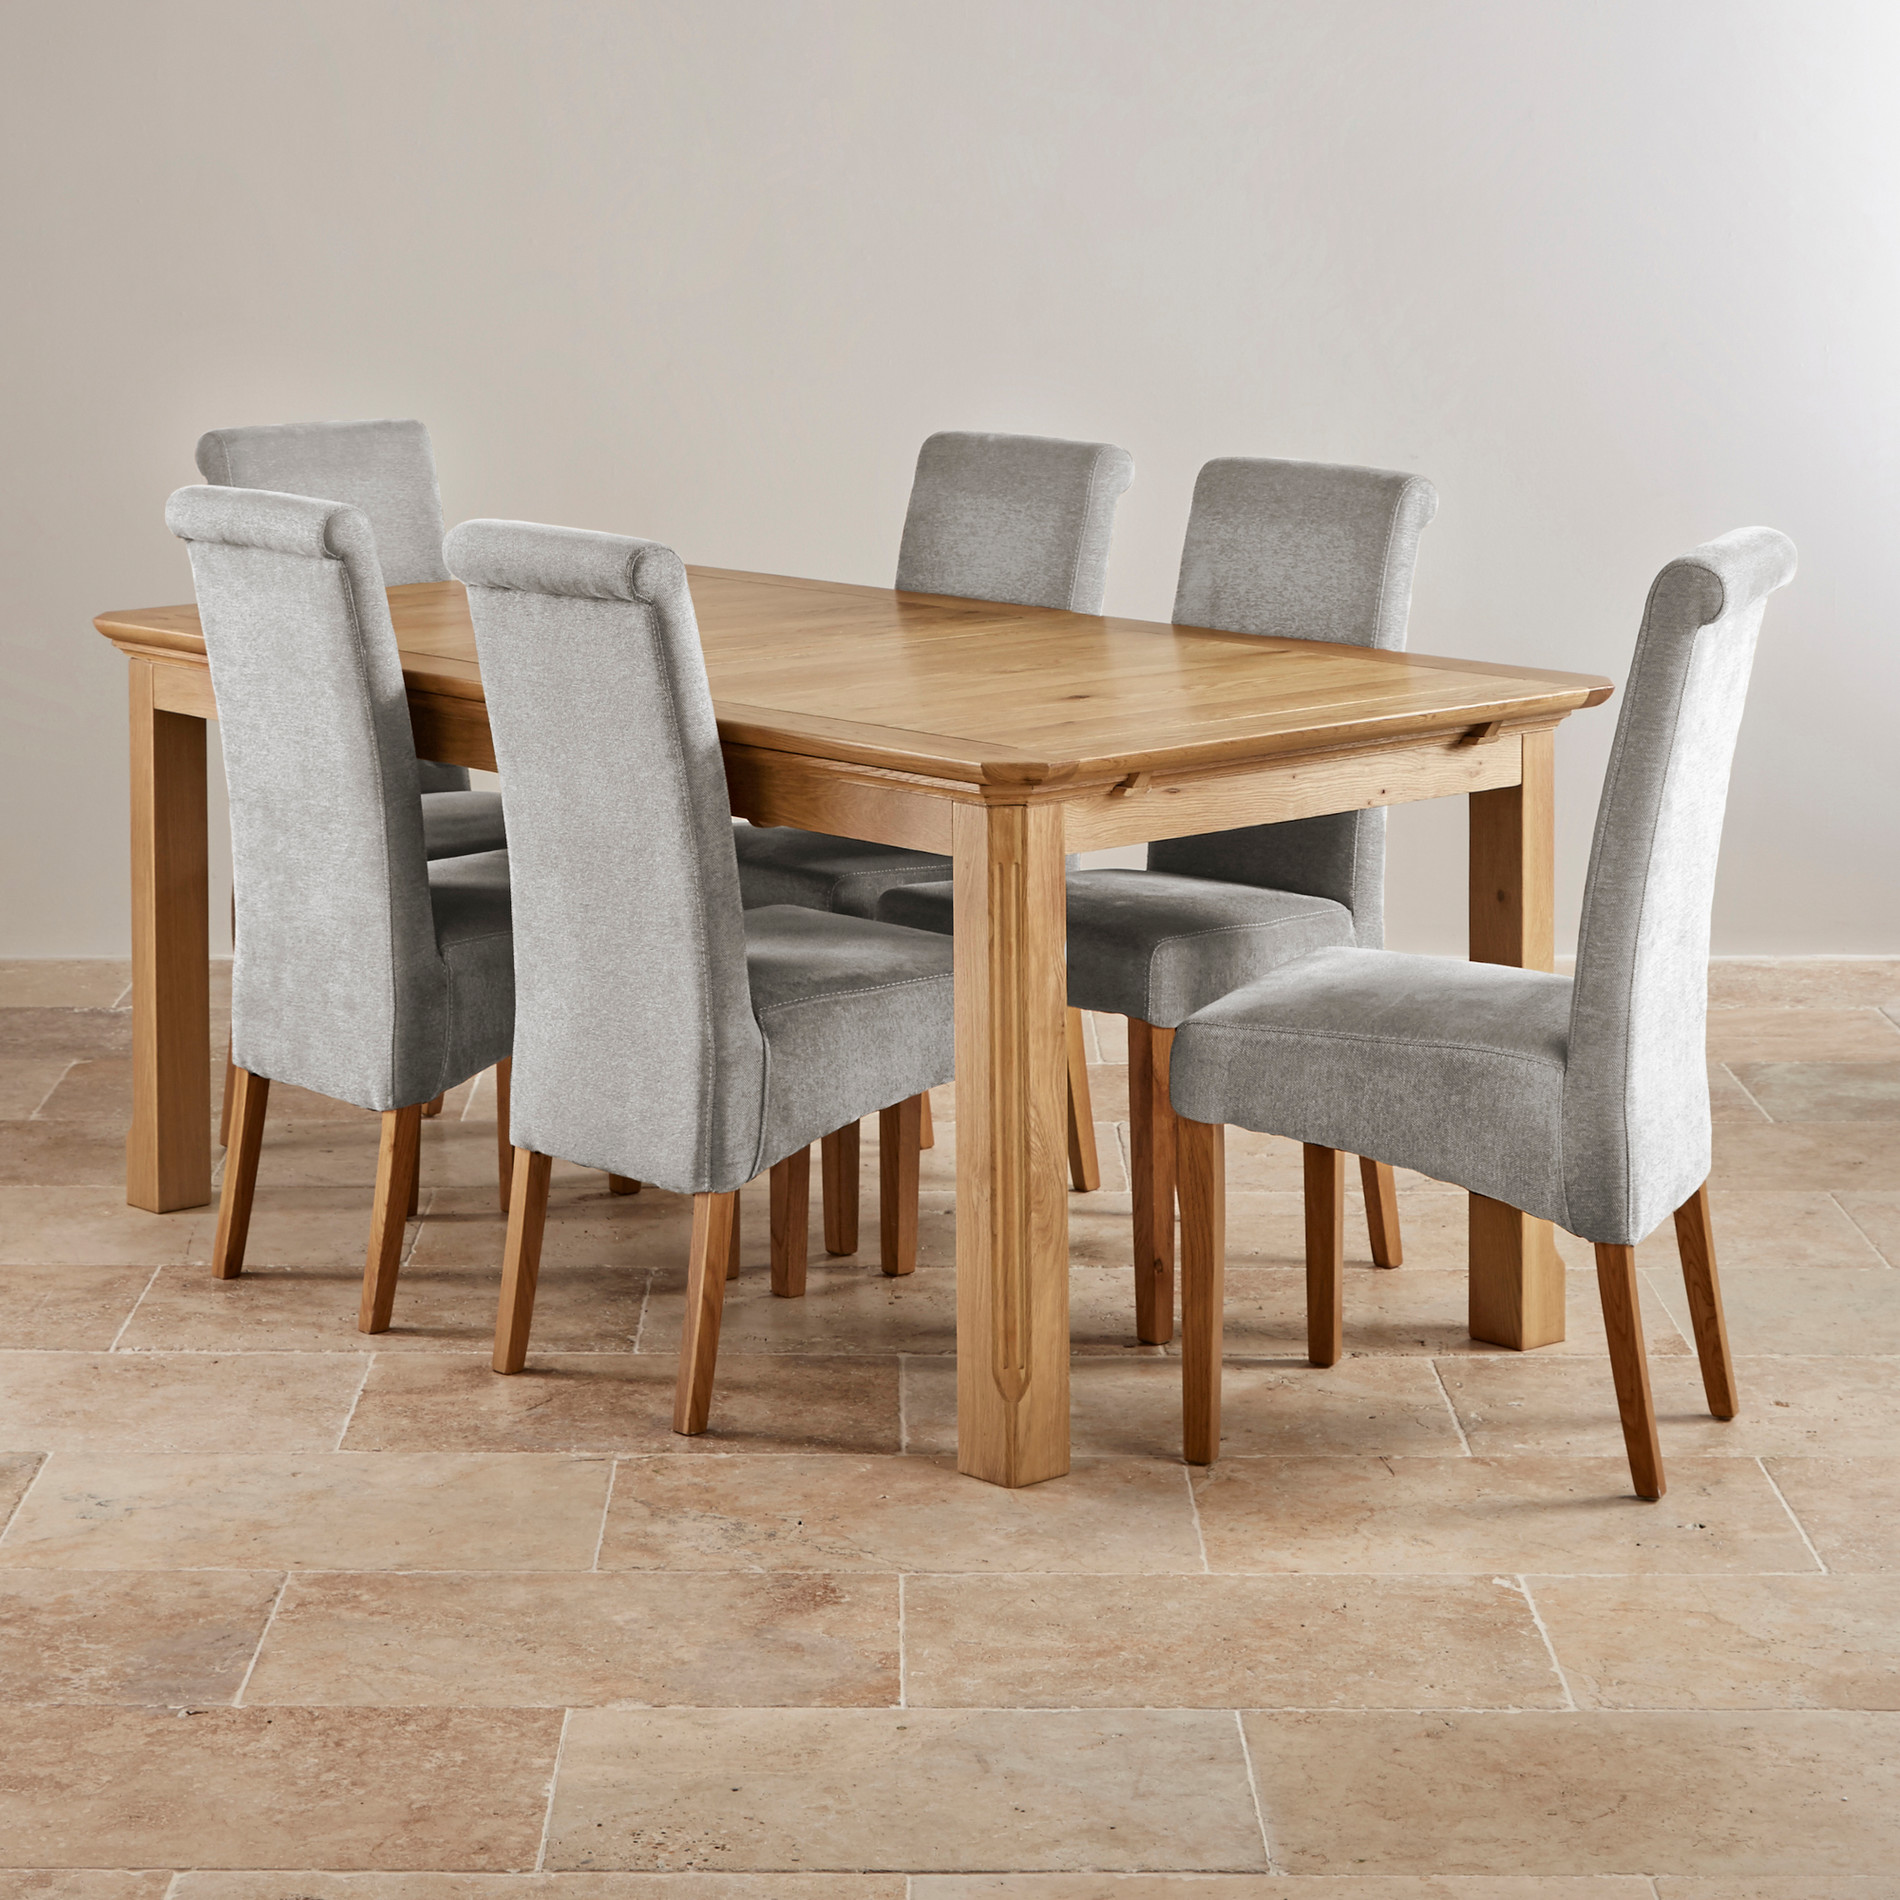 edinburgh extending dining set in oak dining table 6 chairs. Black Bedroom Furniture Sets. Home Design Ideas